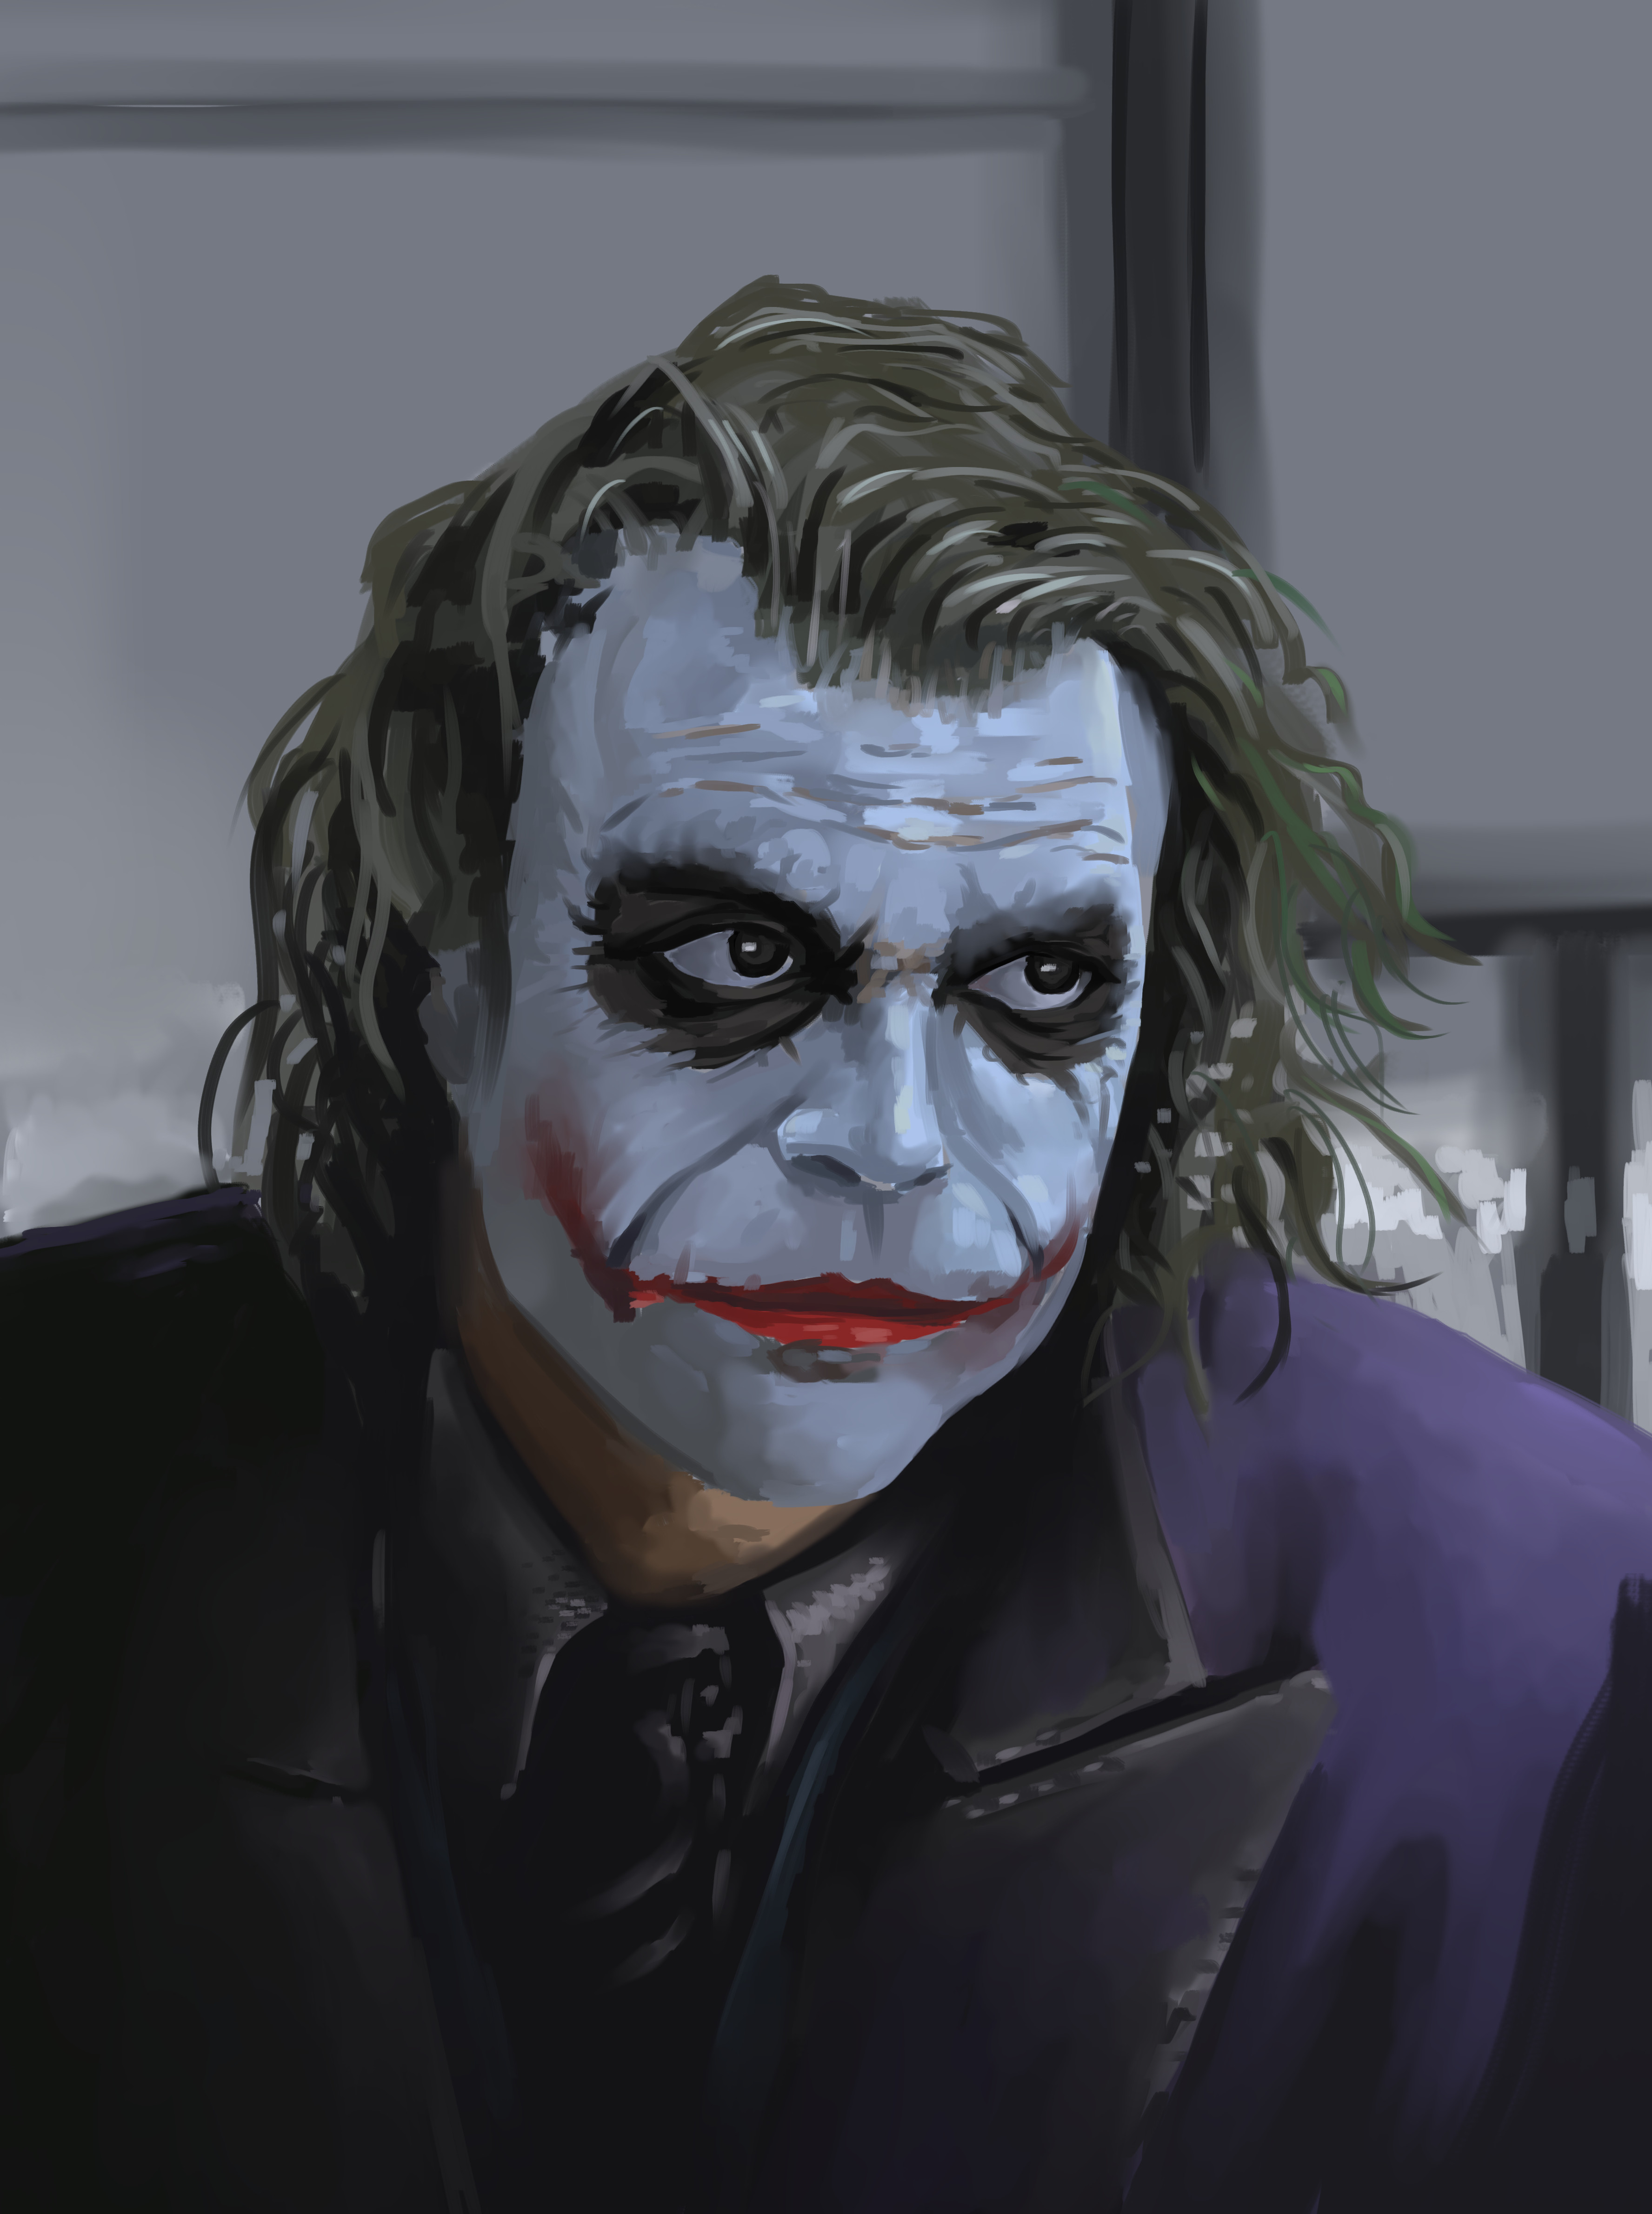 The Joker reviewing some life choices.